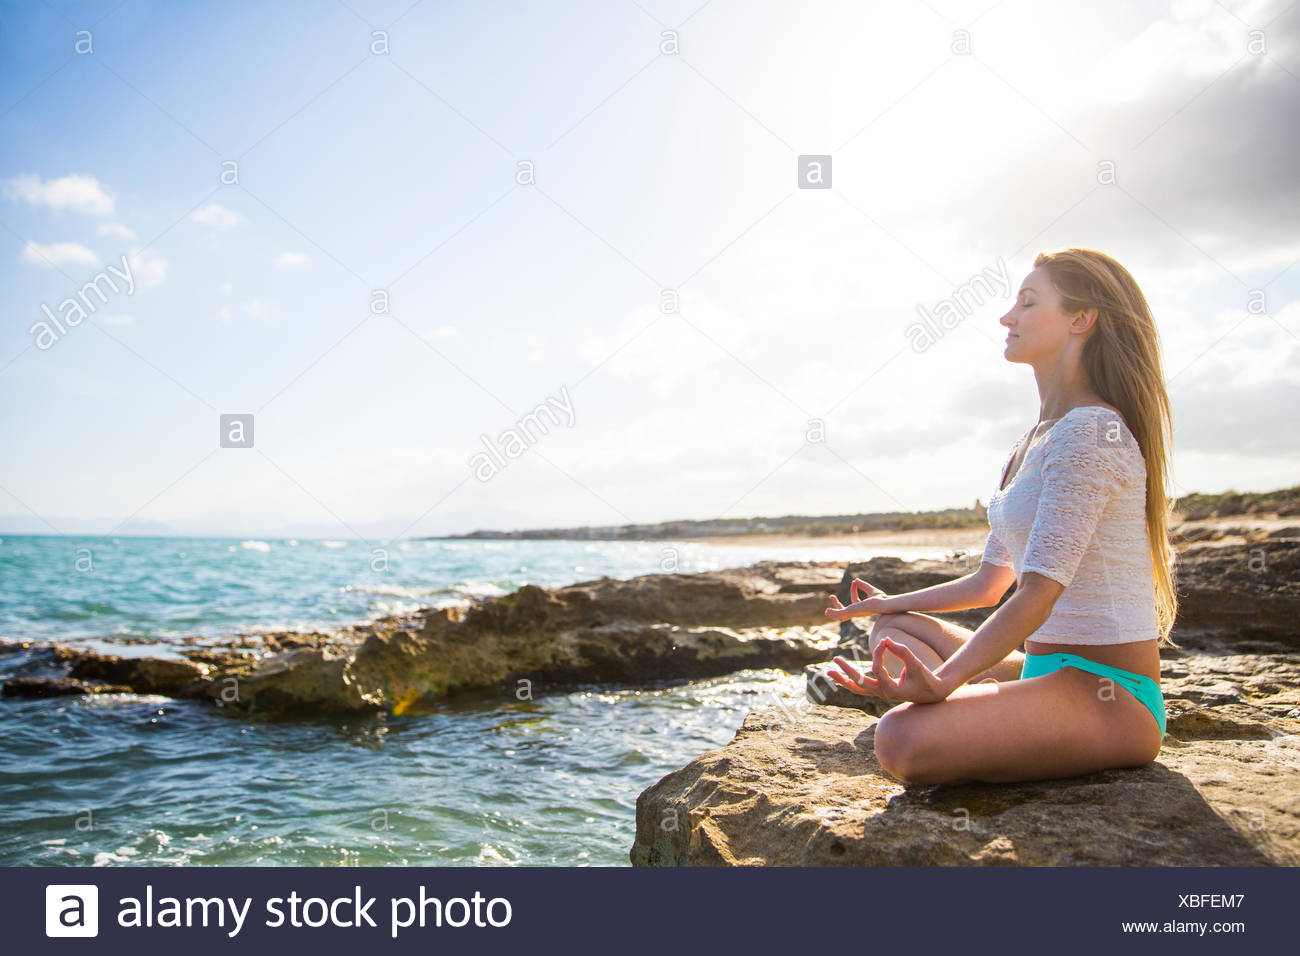 Young woman sitting on rocks by sea, in yoga position - Stock Image